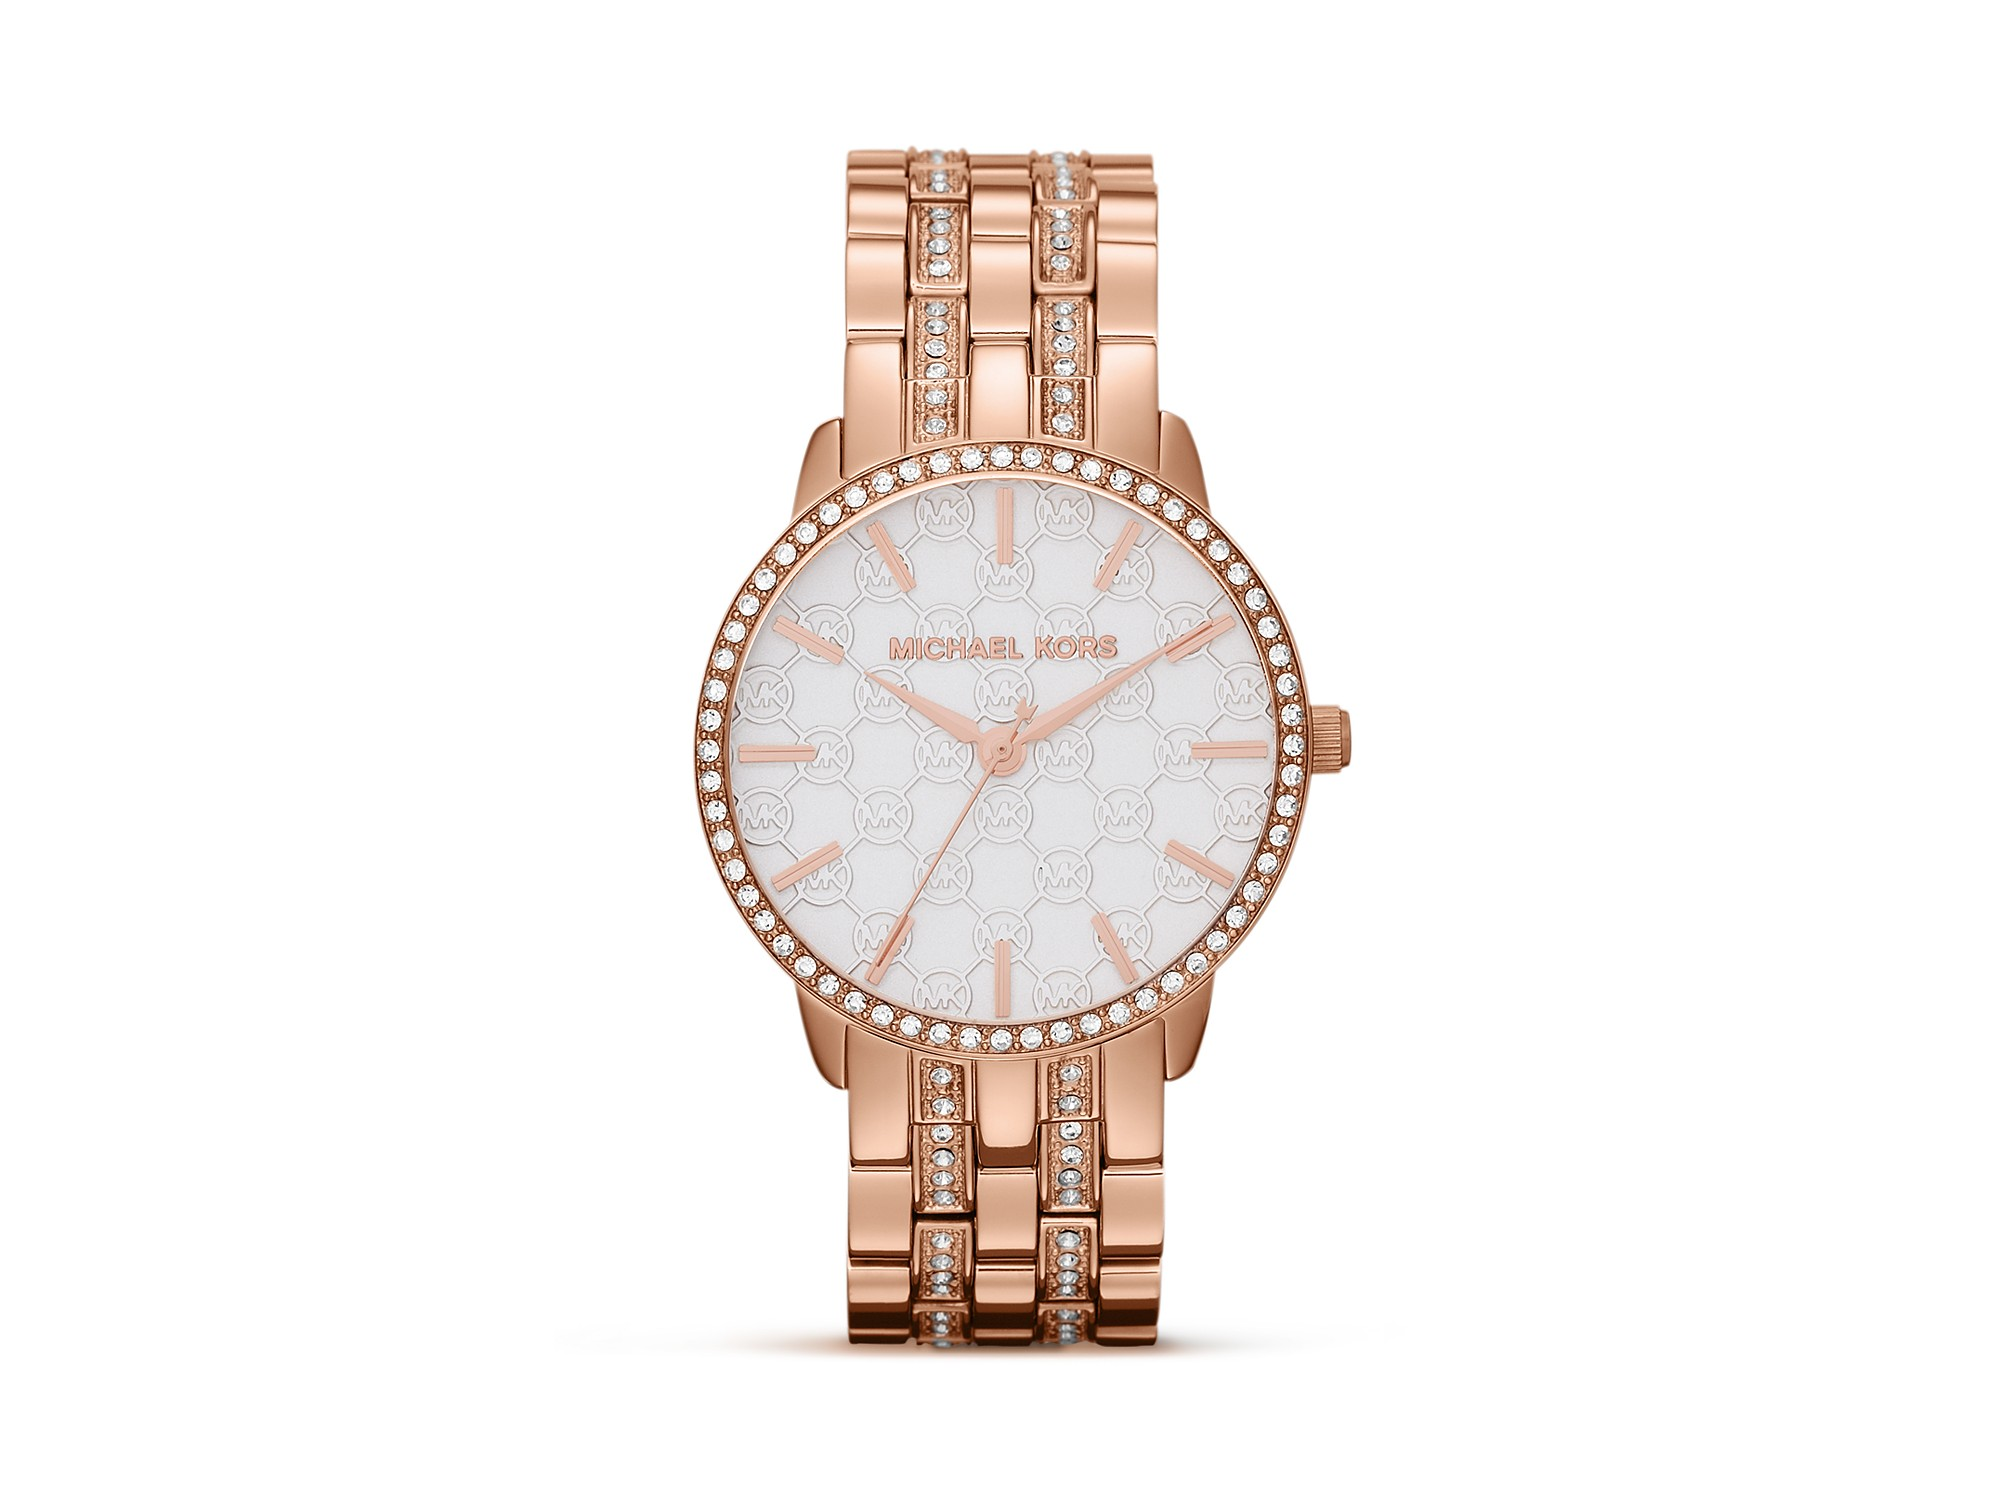 michael kors lady nini watch 35mm in gold rose gold lyst. Black Bedroom Furniture Sets. Home Design Ideas